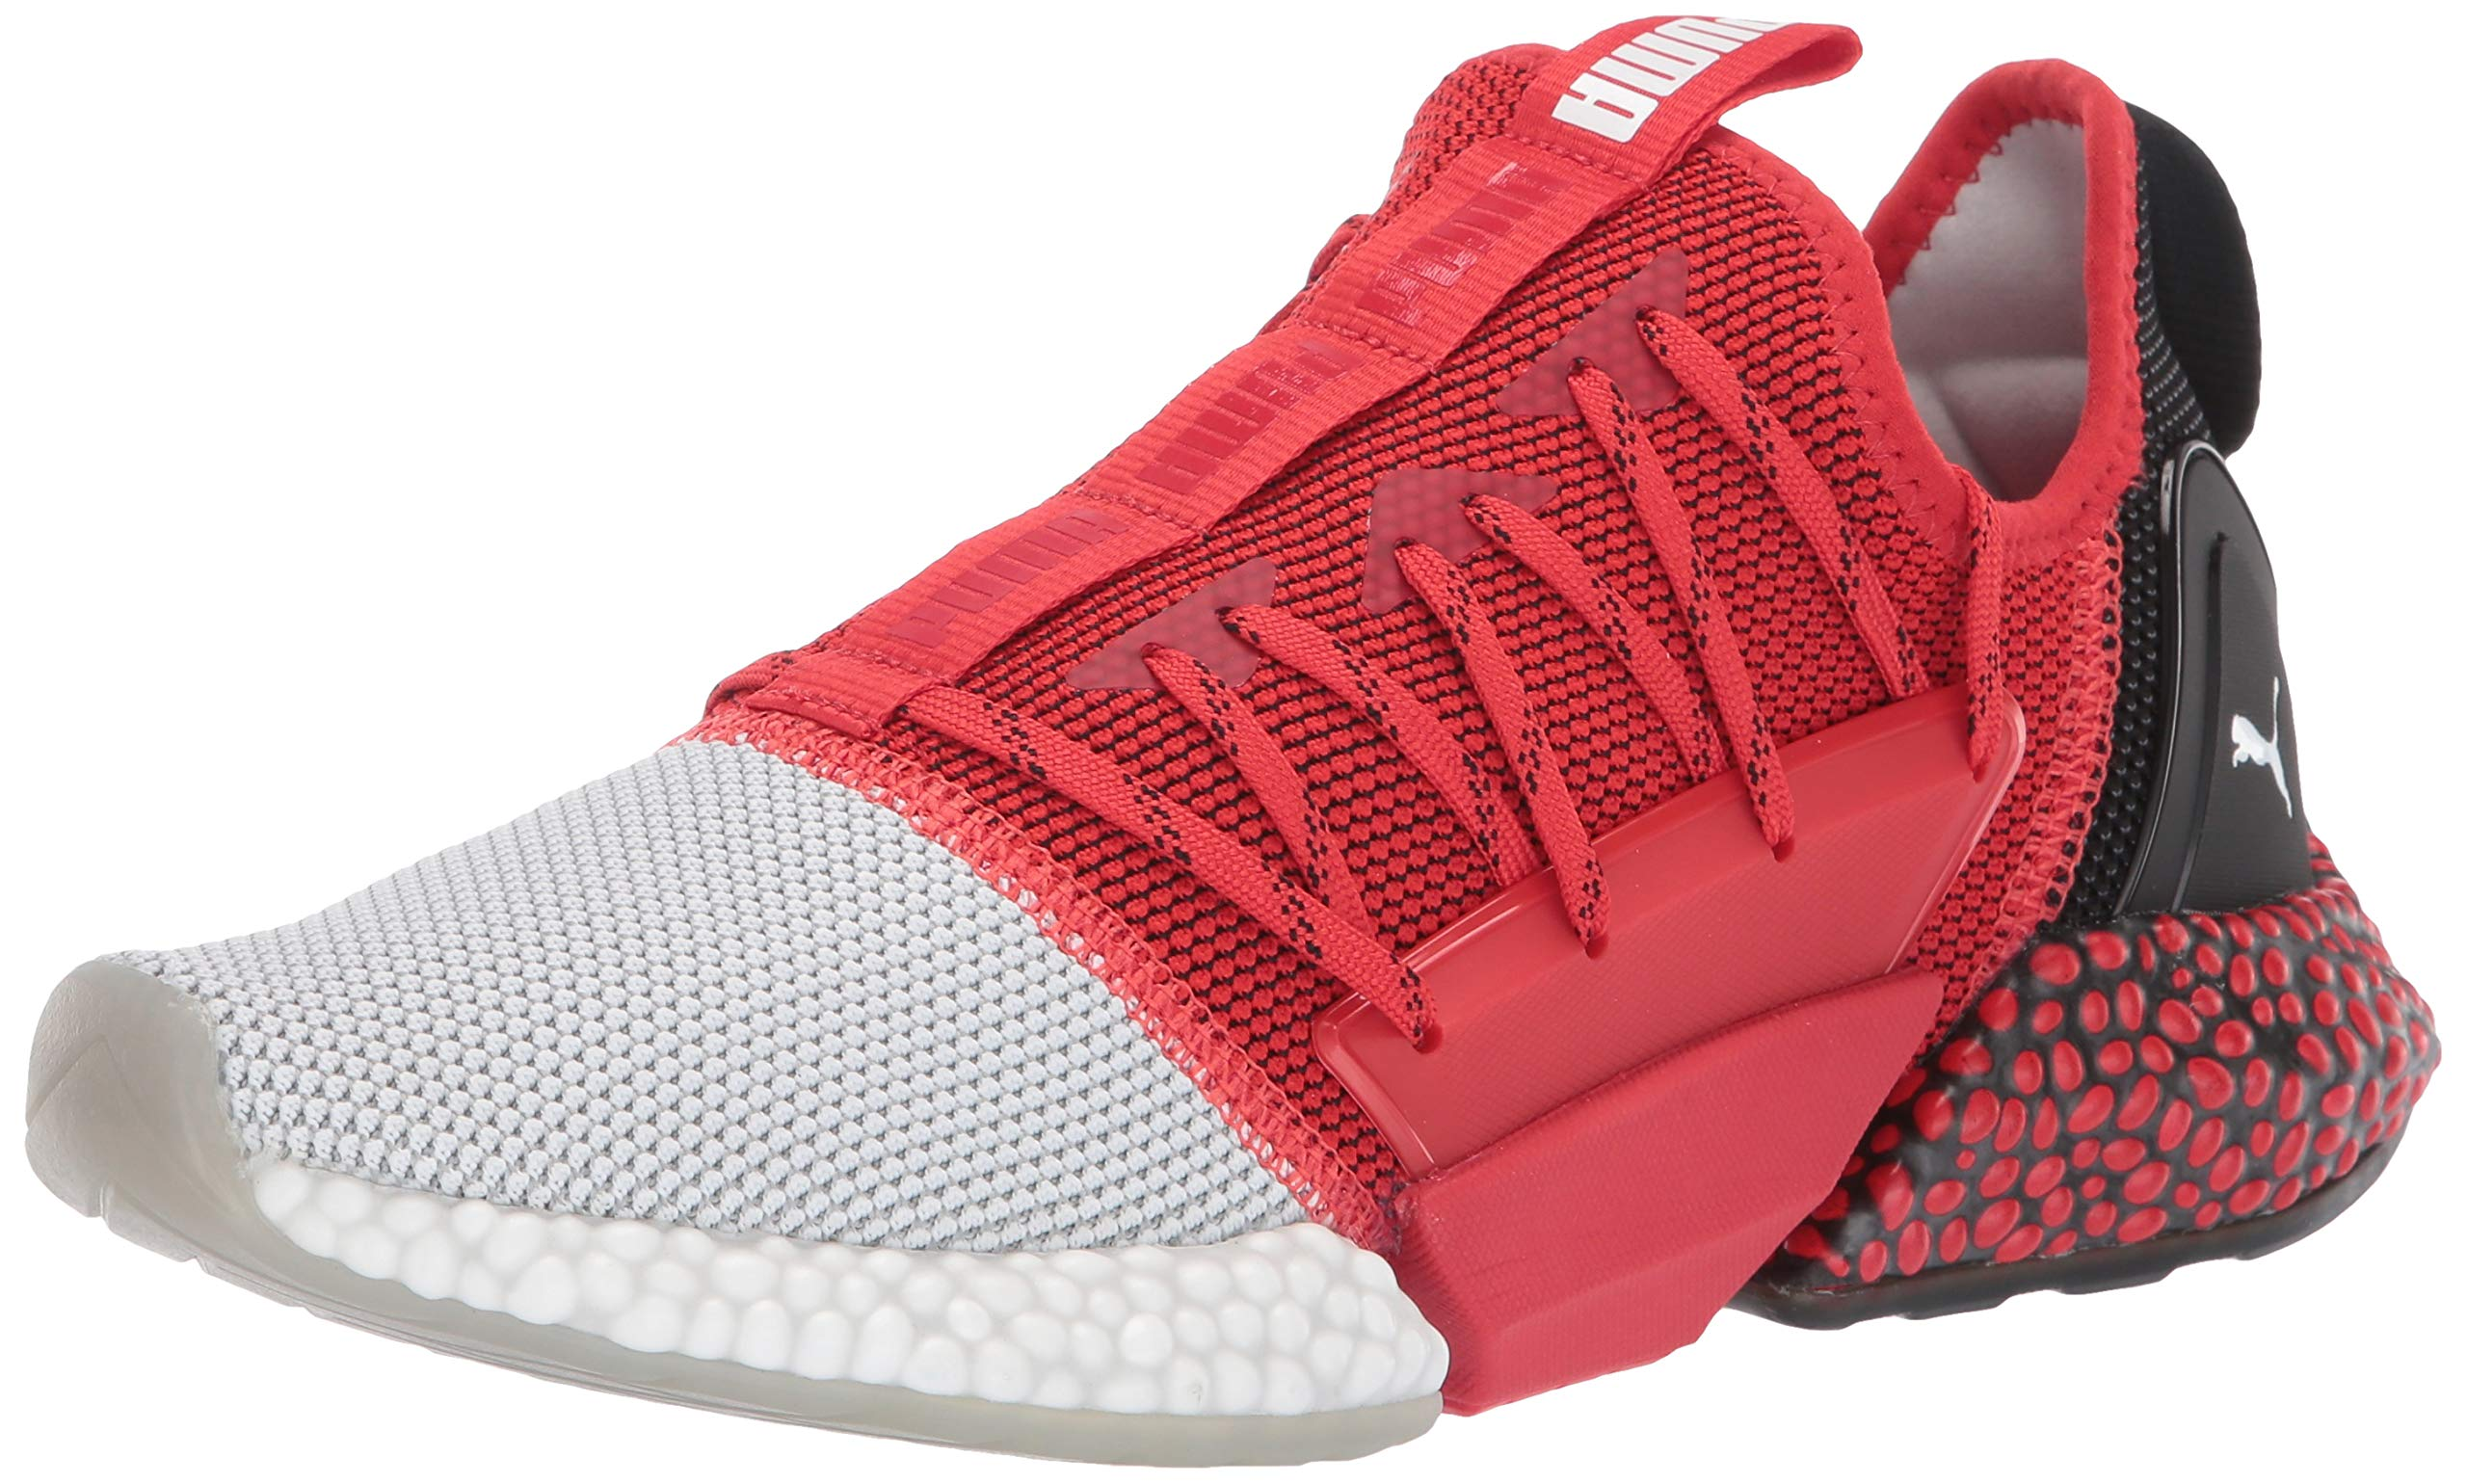 puma hybrid rocket runner sneakers